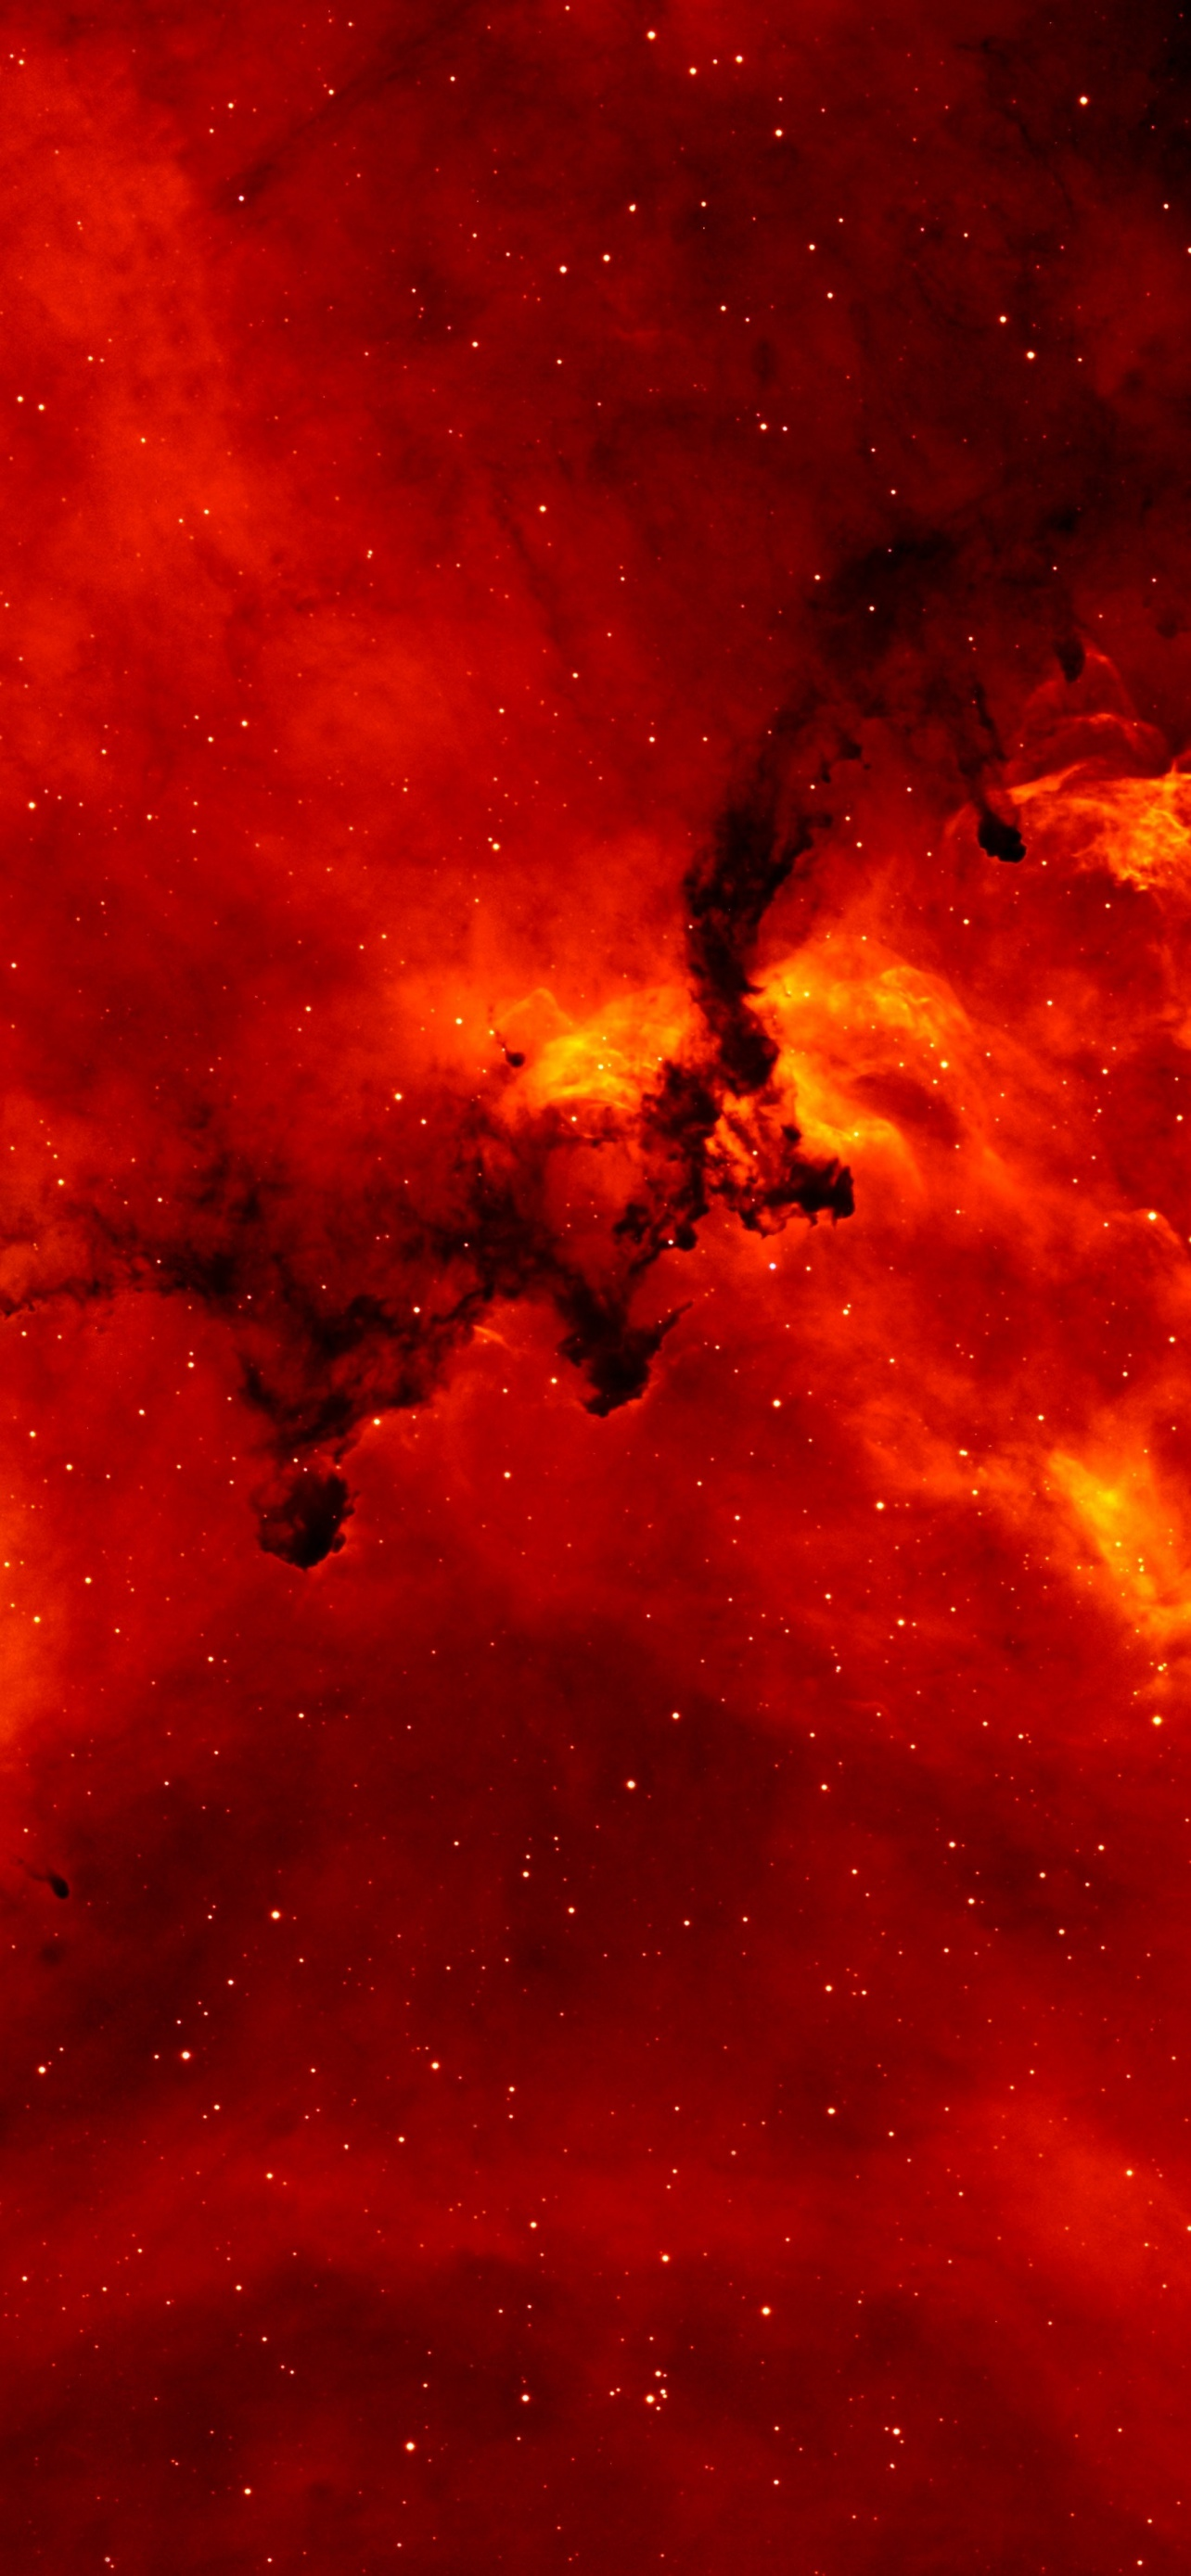 Solar flares Wallpaper 4K Fire Outer space Blazing Red